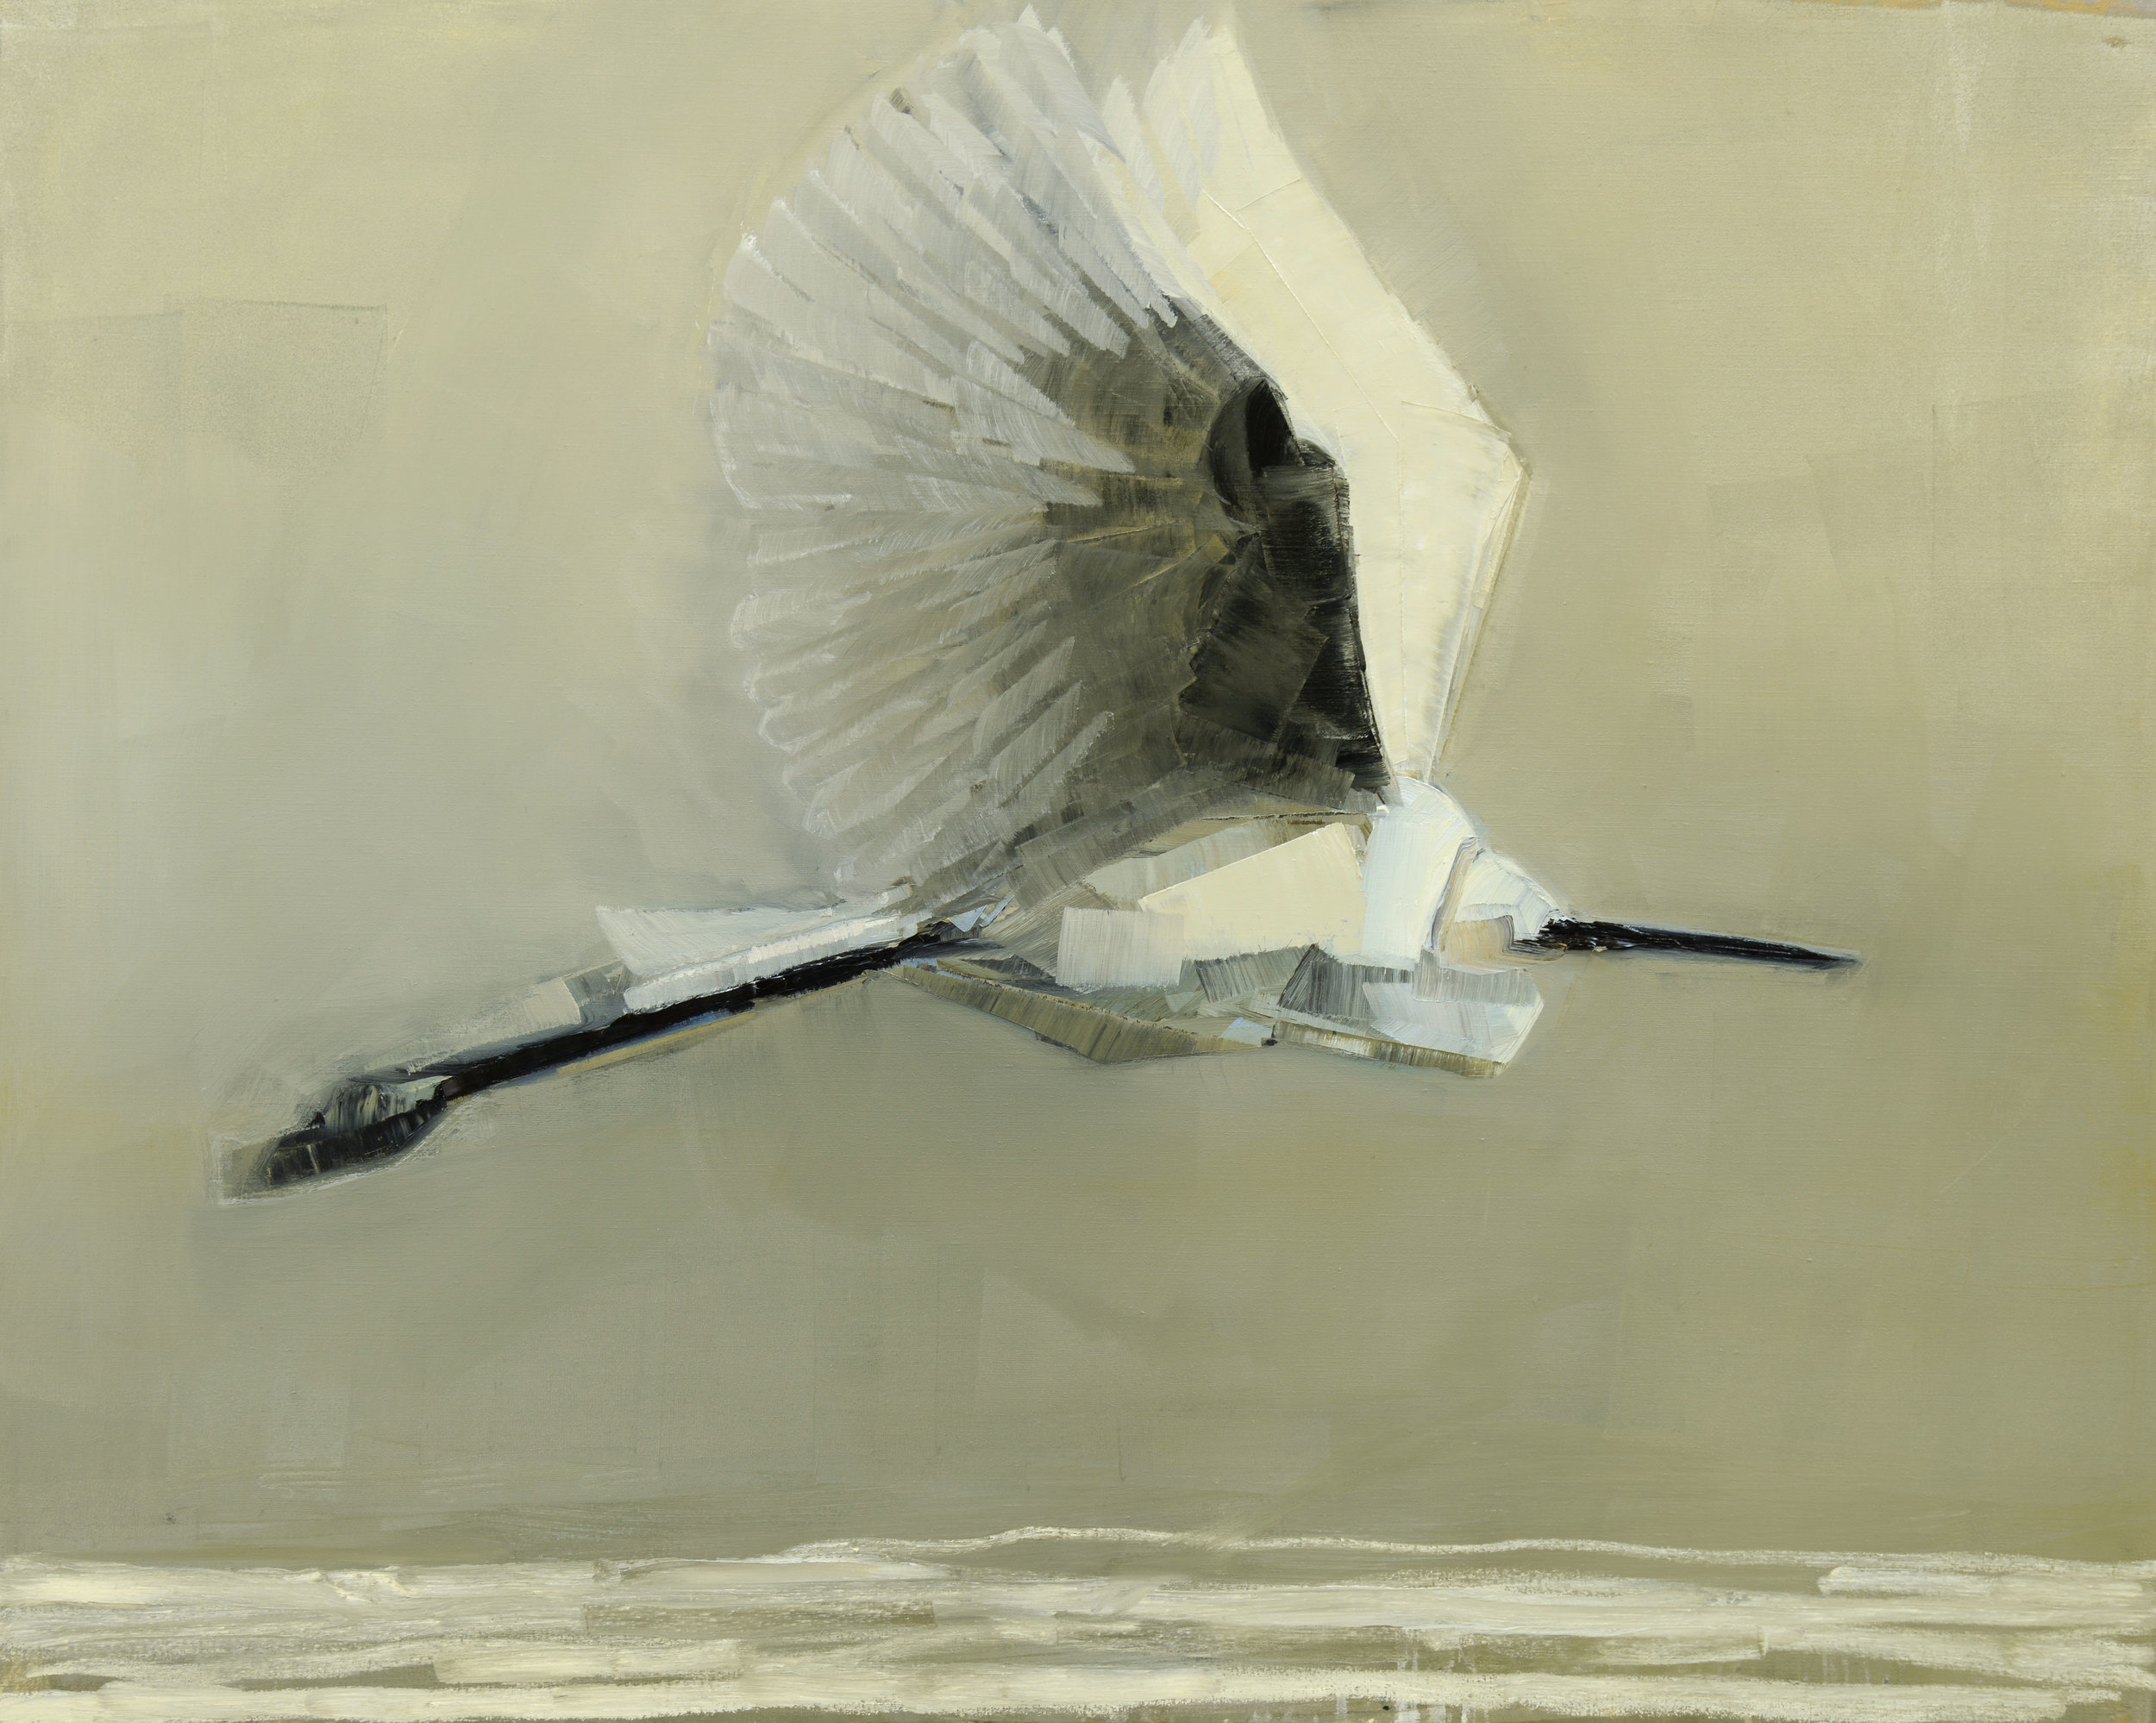 ERGET IN FLIGHT   -PRIVATE COLLECTION-  48 x 60 inches  oil and wax on linen